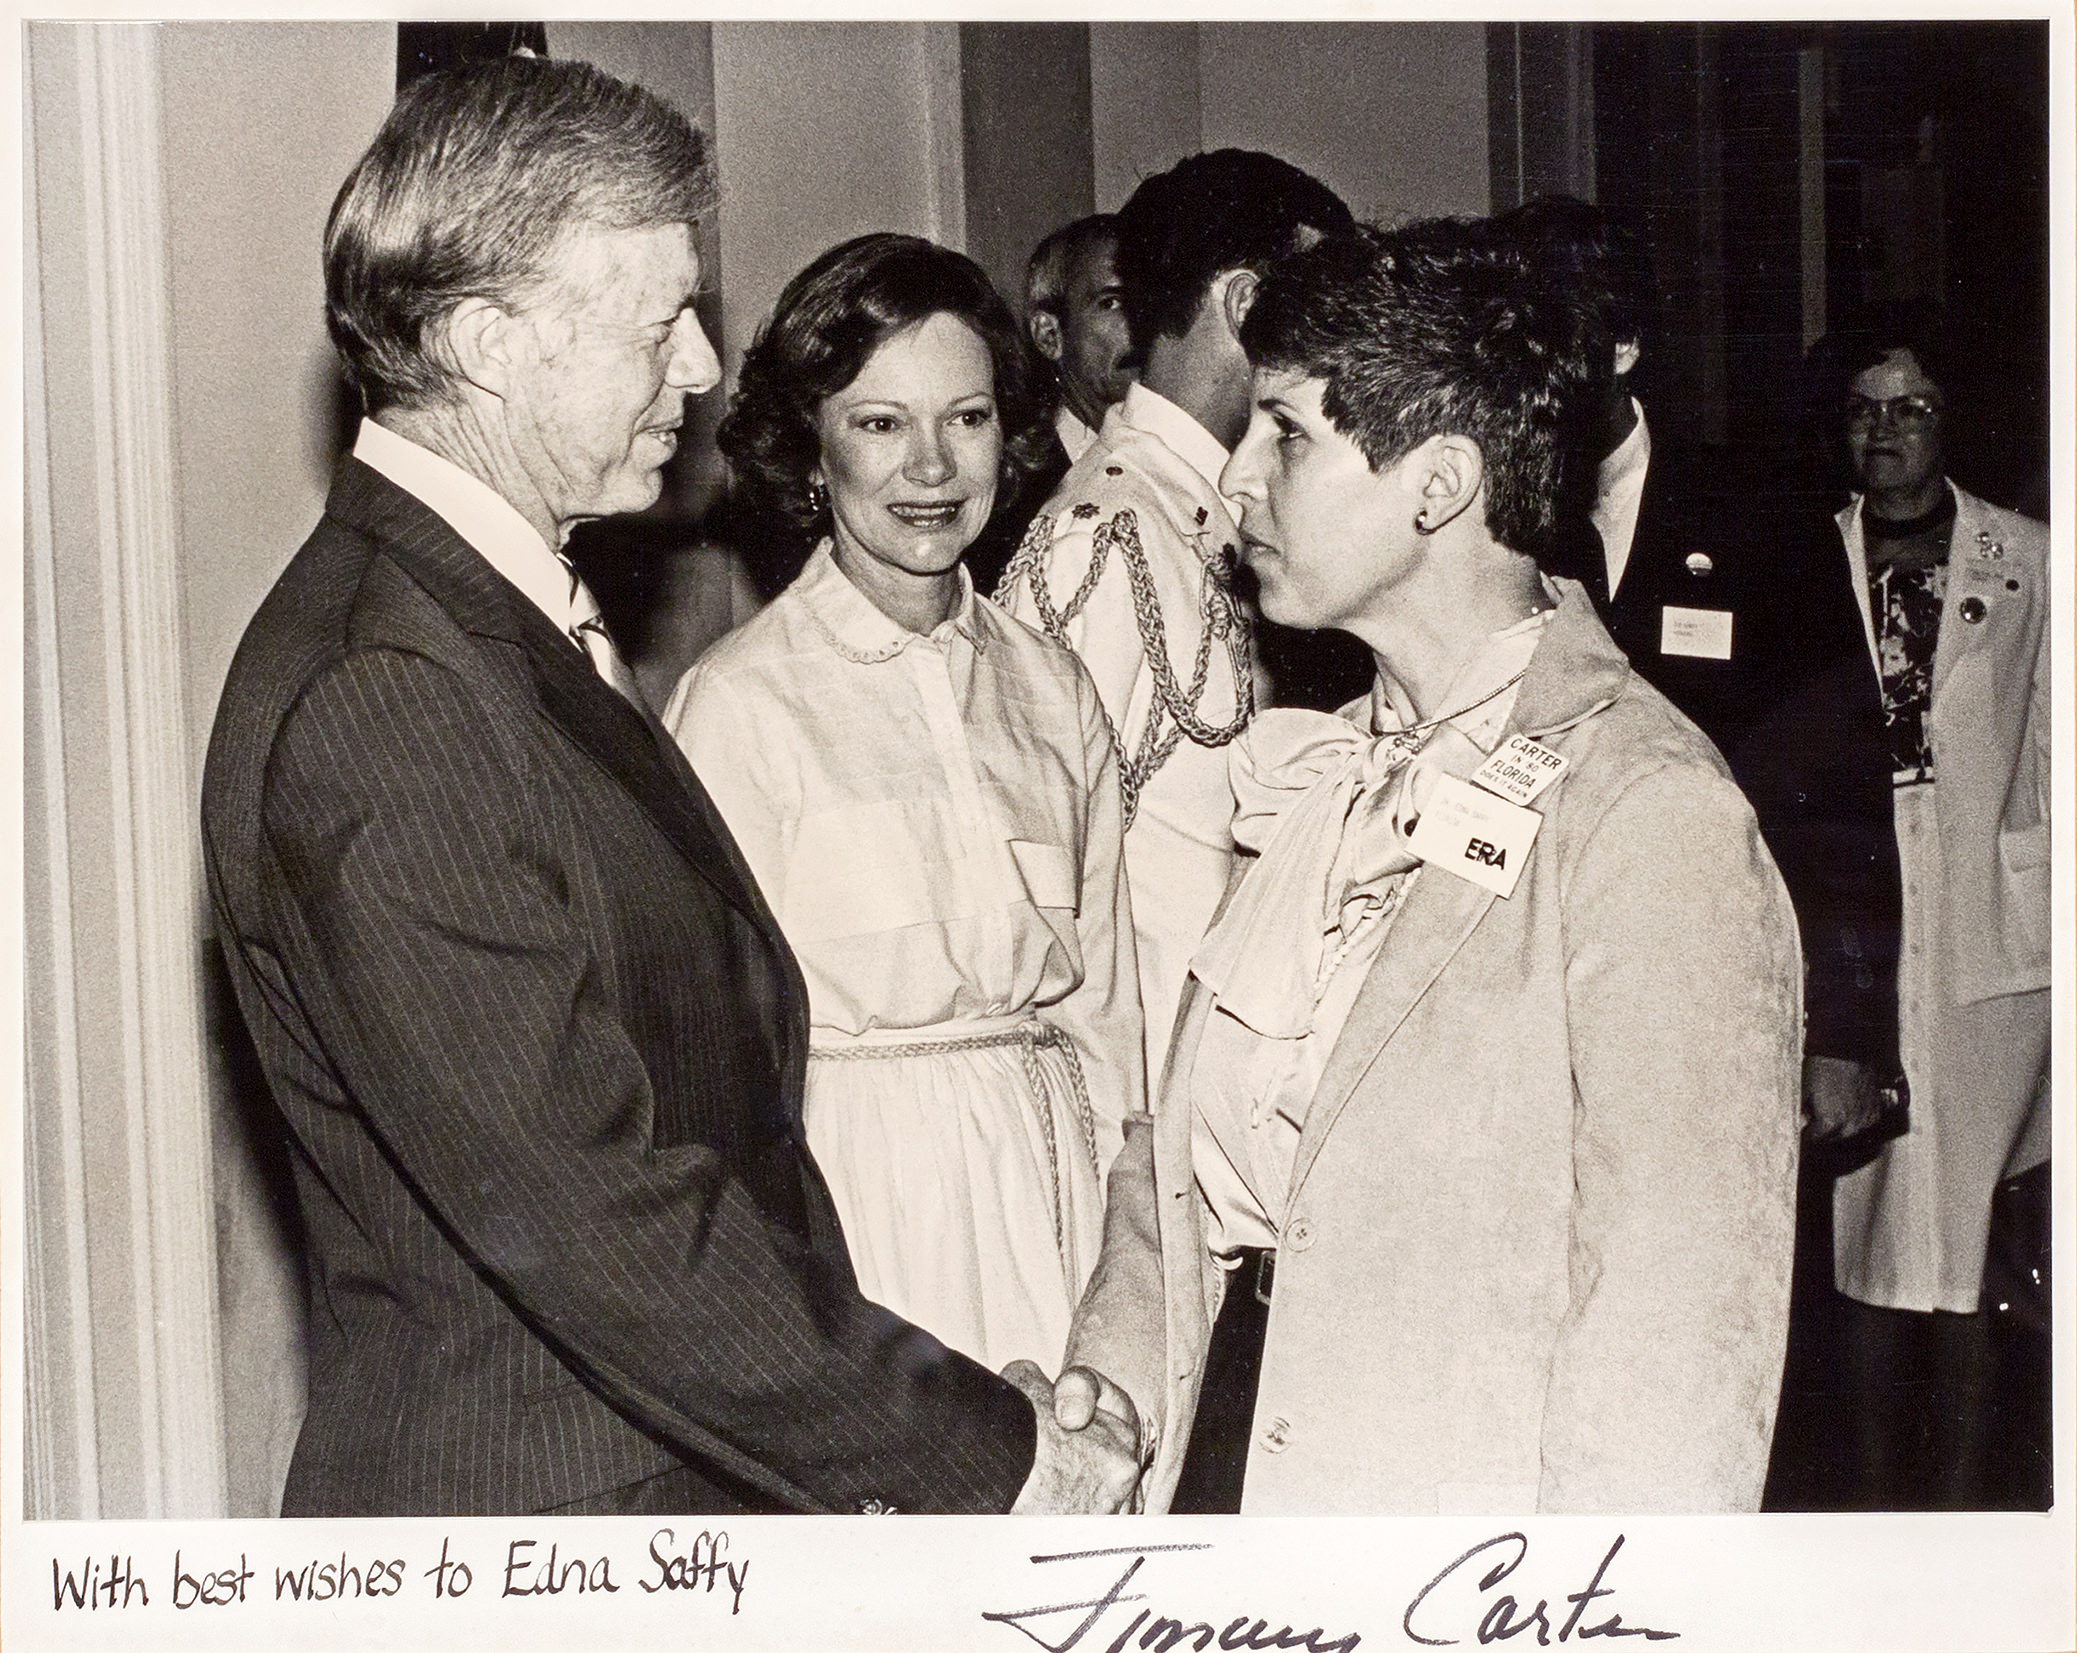 Dr. Saffy and President Carter